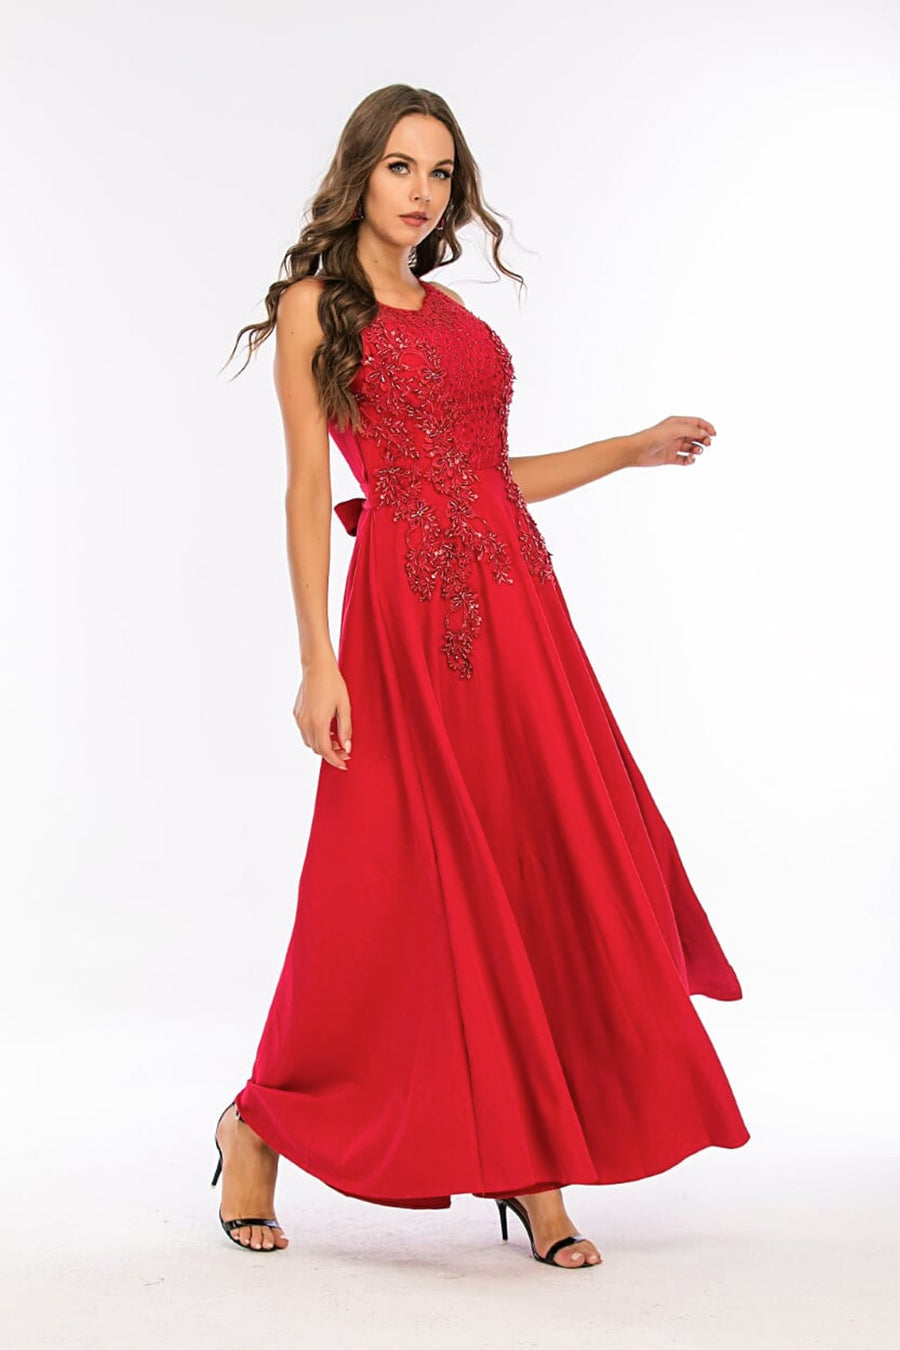 Mantra Pakistan Red Long Dress with sequins | Western Wear